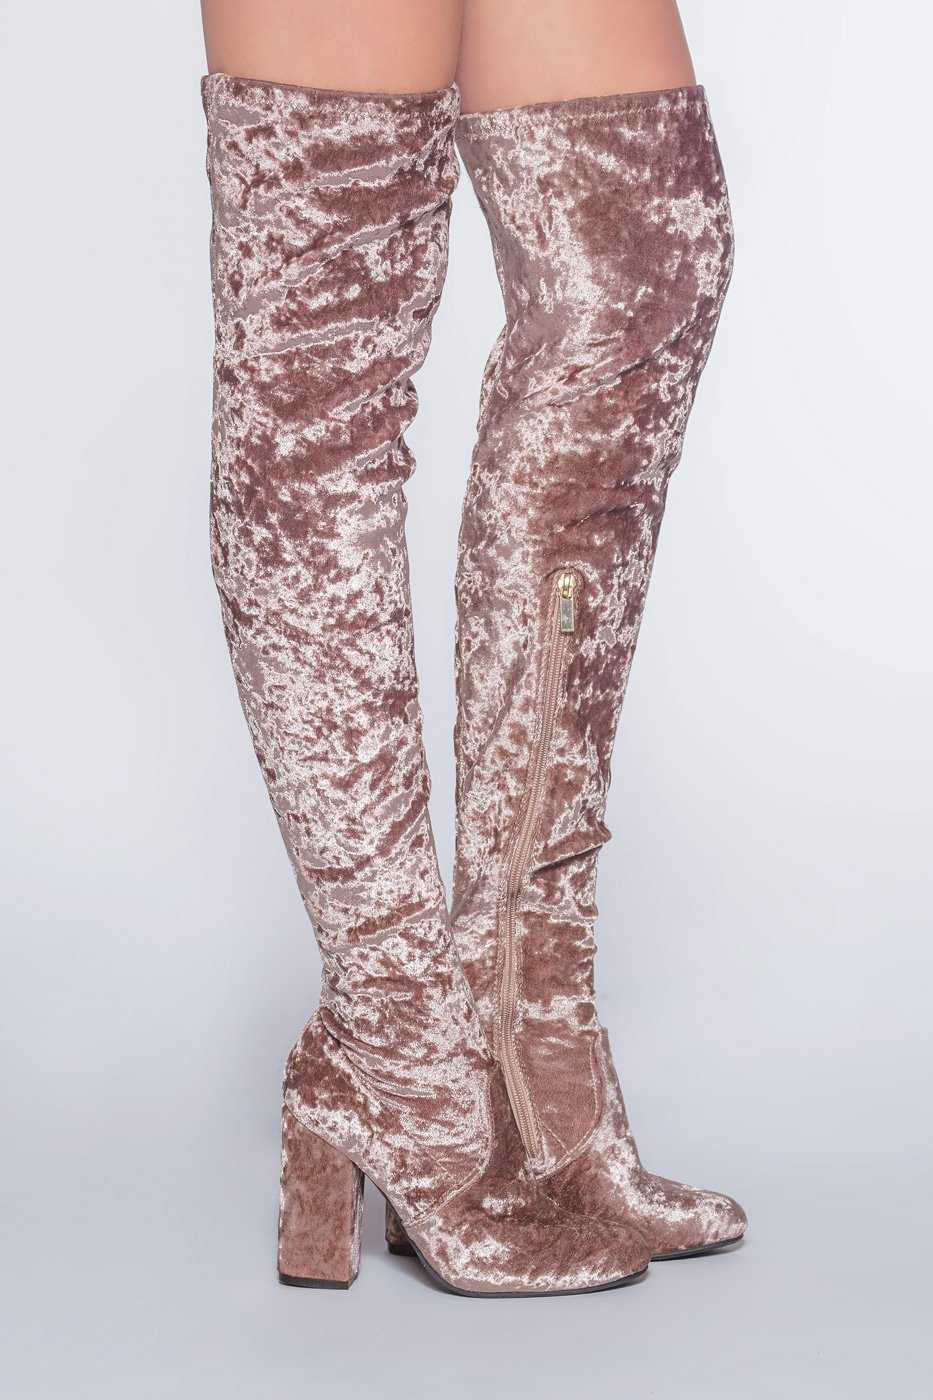 1c70f17cc86 ... Boots - A Little Crush Thigh High Boots ...